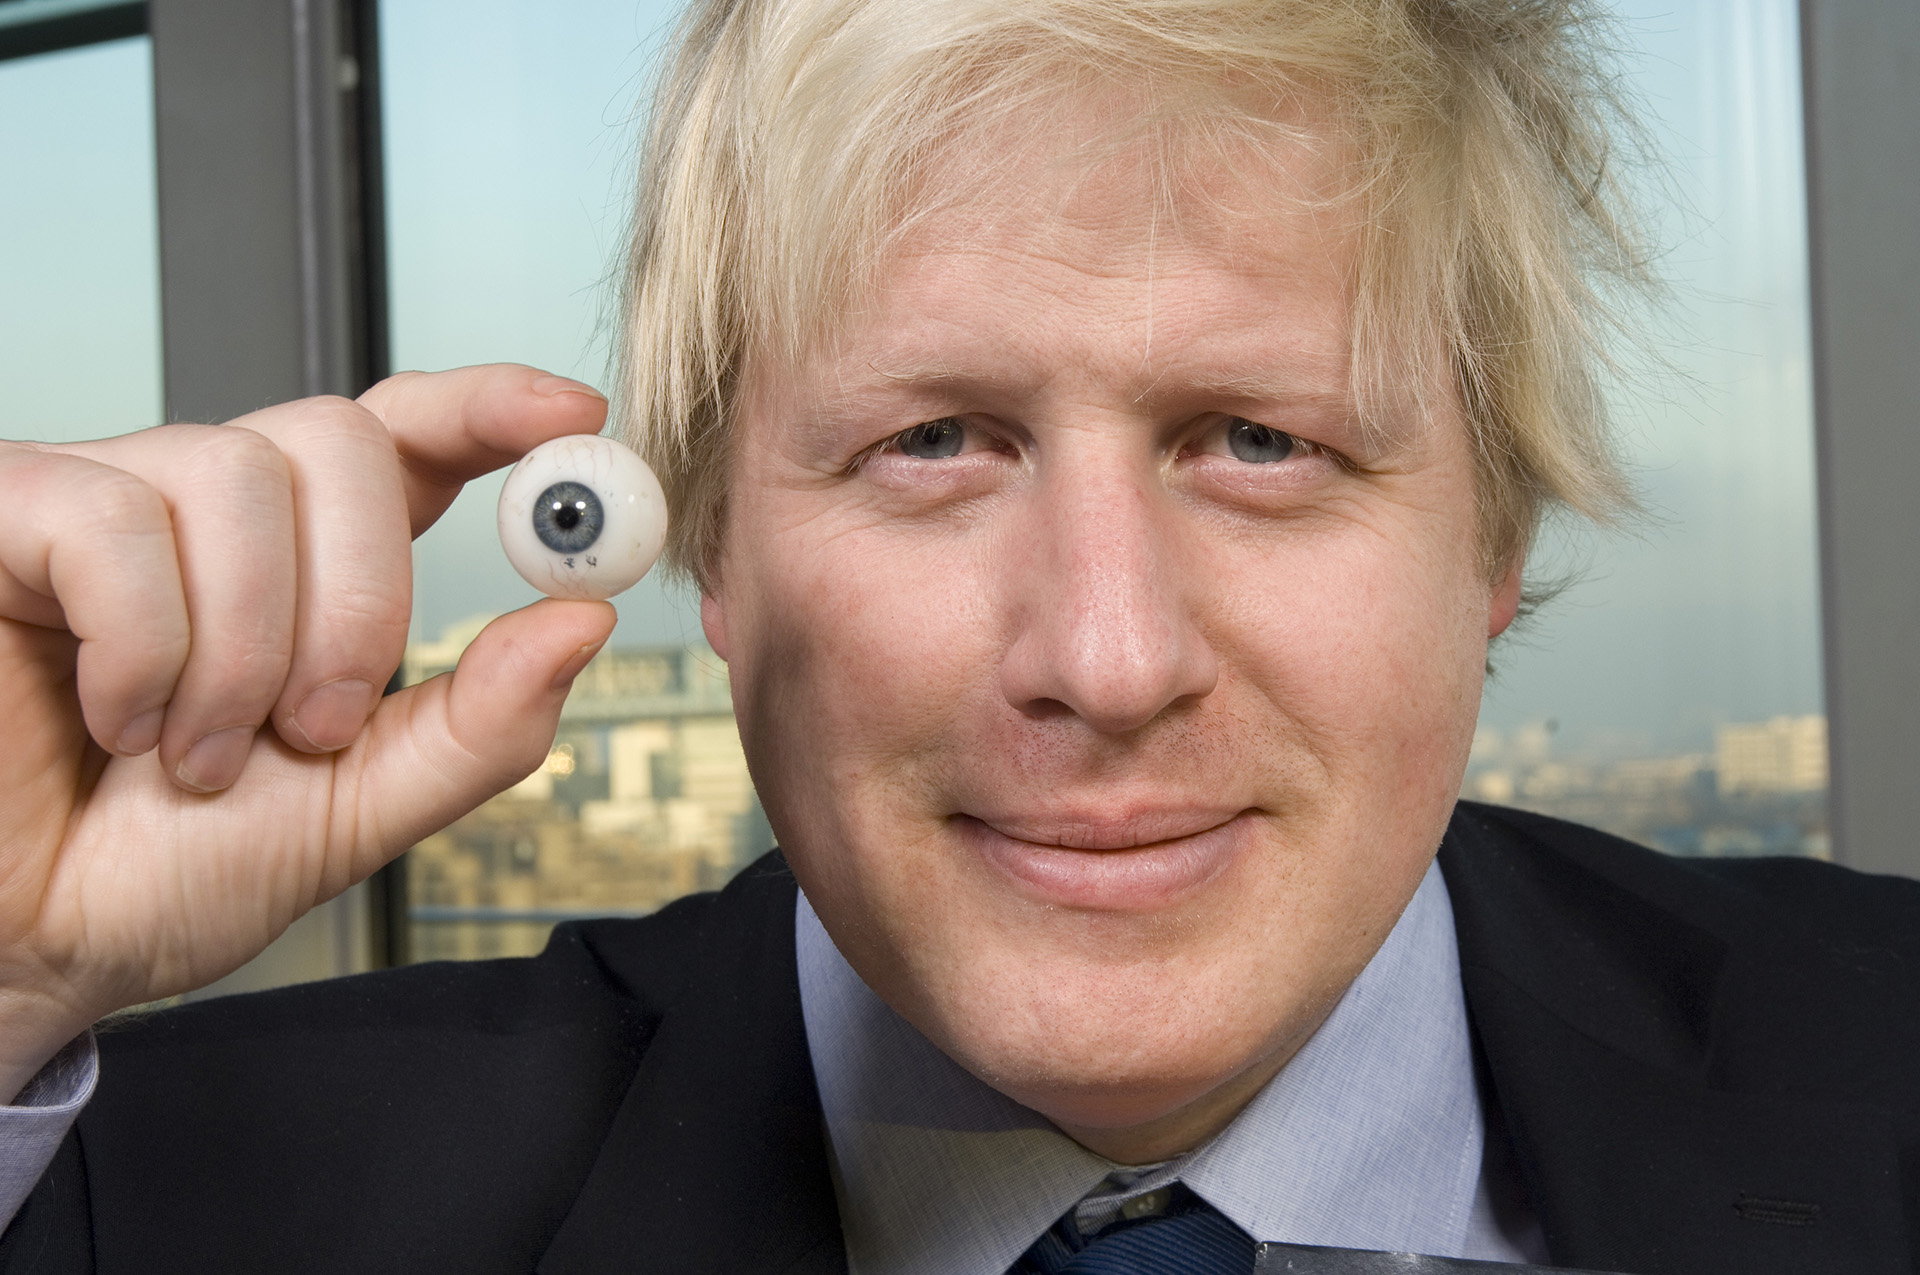 Artists find the closest colour match to Boris's eyes to make them as accurate as possible